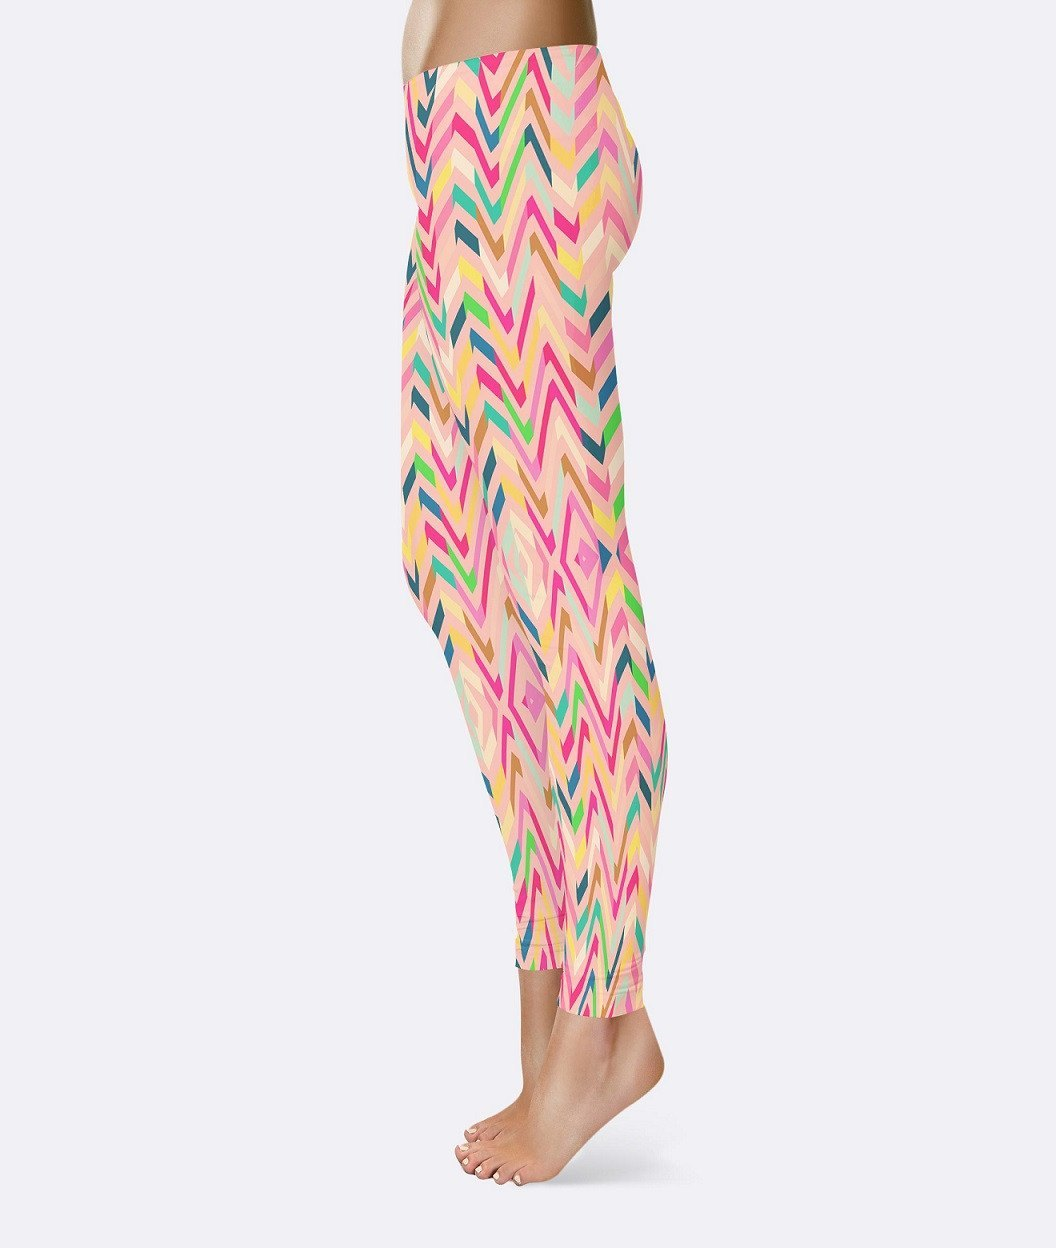 Slow Dive - RDKL LEGGING#12 - RDKL-U  - 1